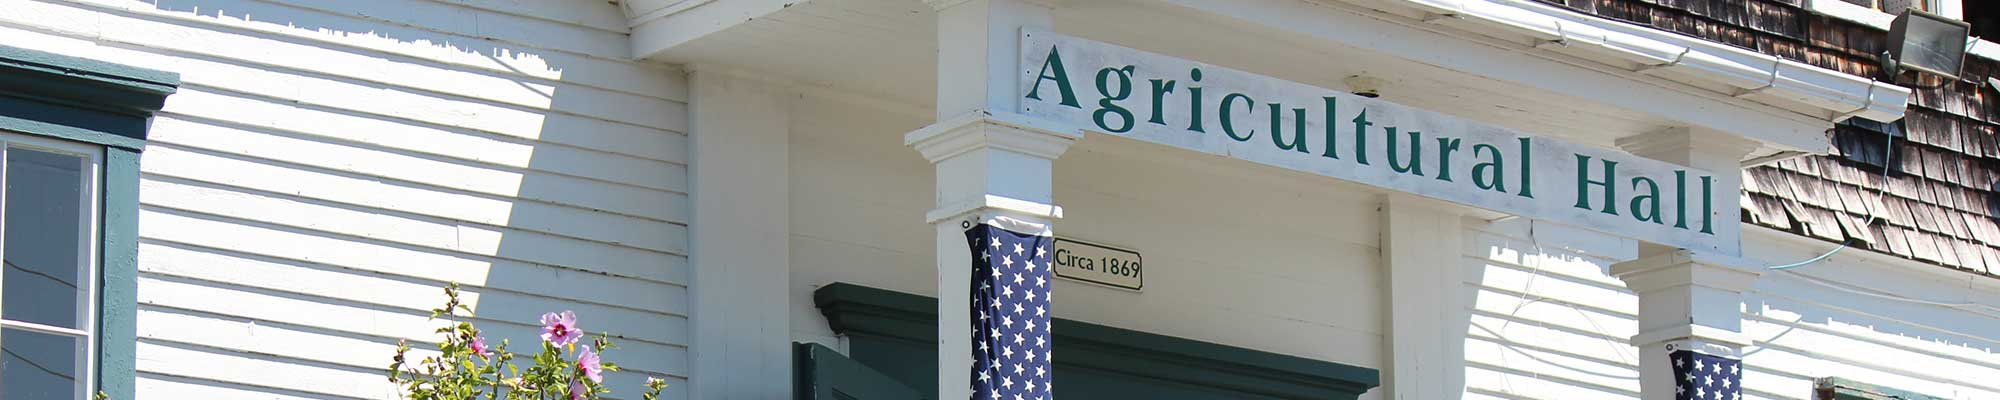 Agricultural Hall Sign